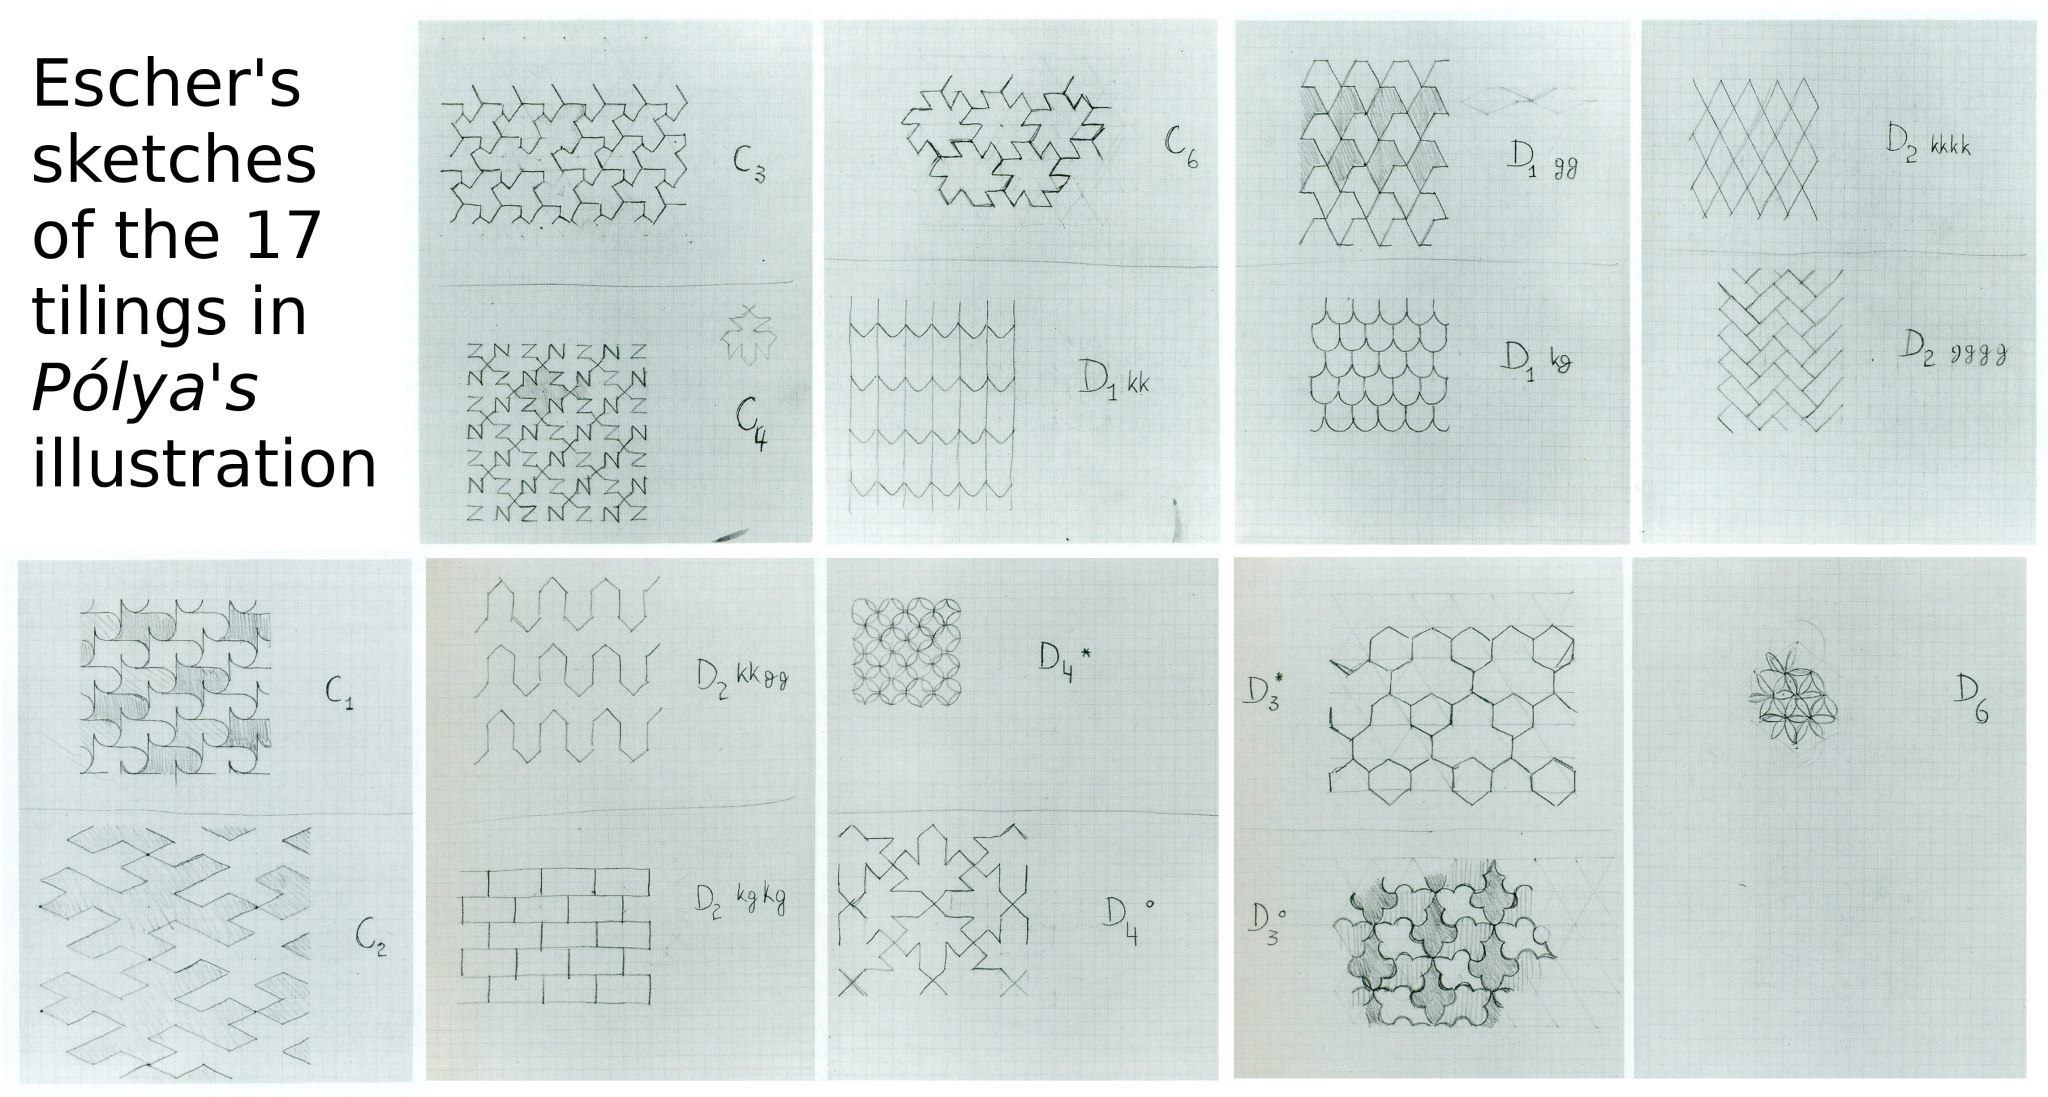 Escher's sketches of the 17 tilings in Pólya's illustration